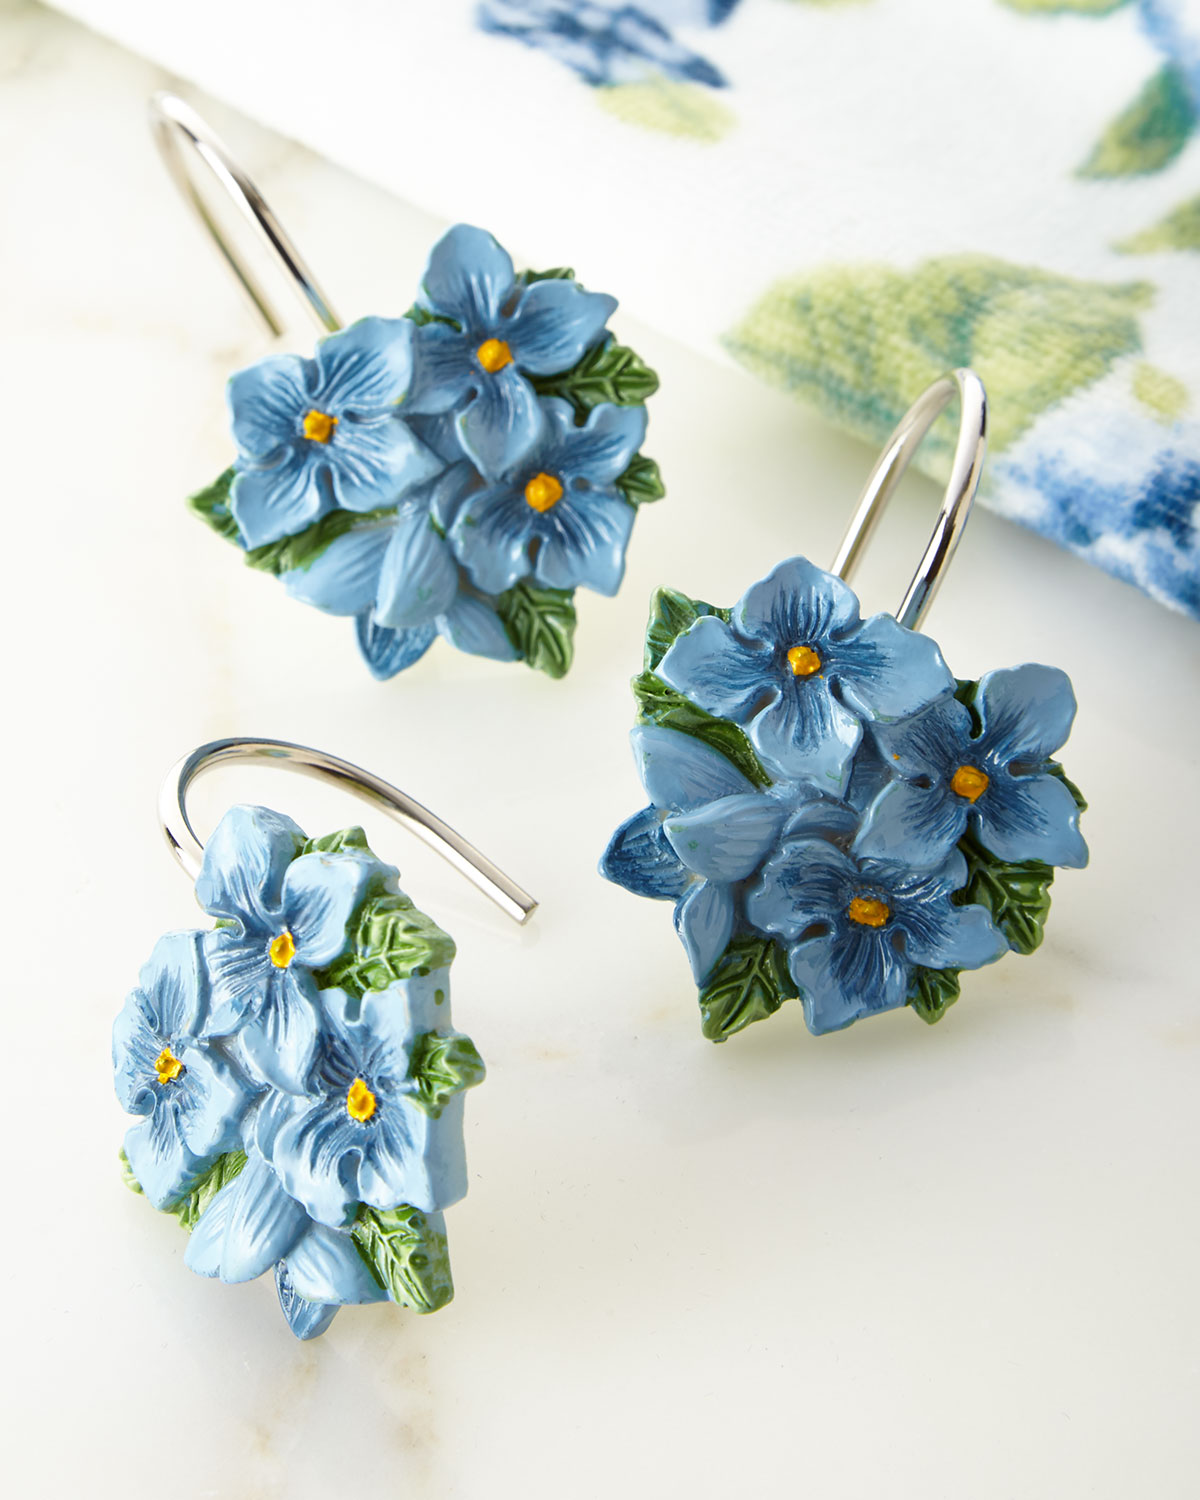 LenoxBlue Flower Garden Shower Curtain Hooks, Set of 12